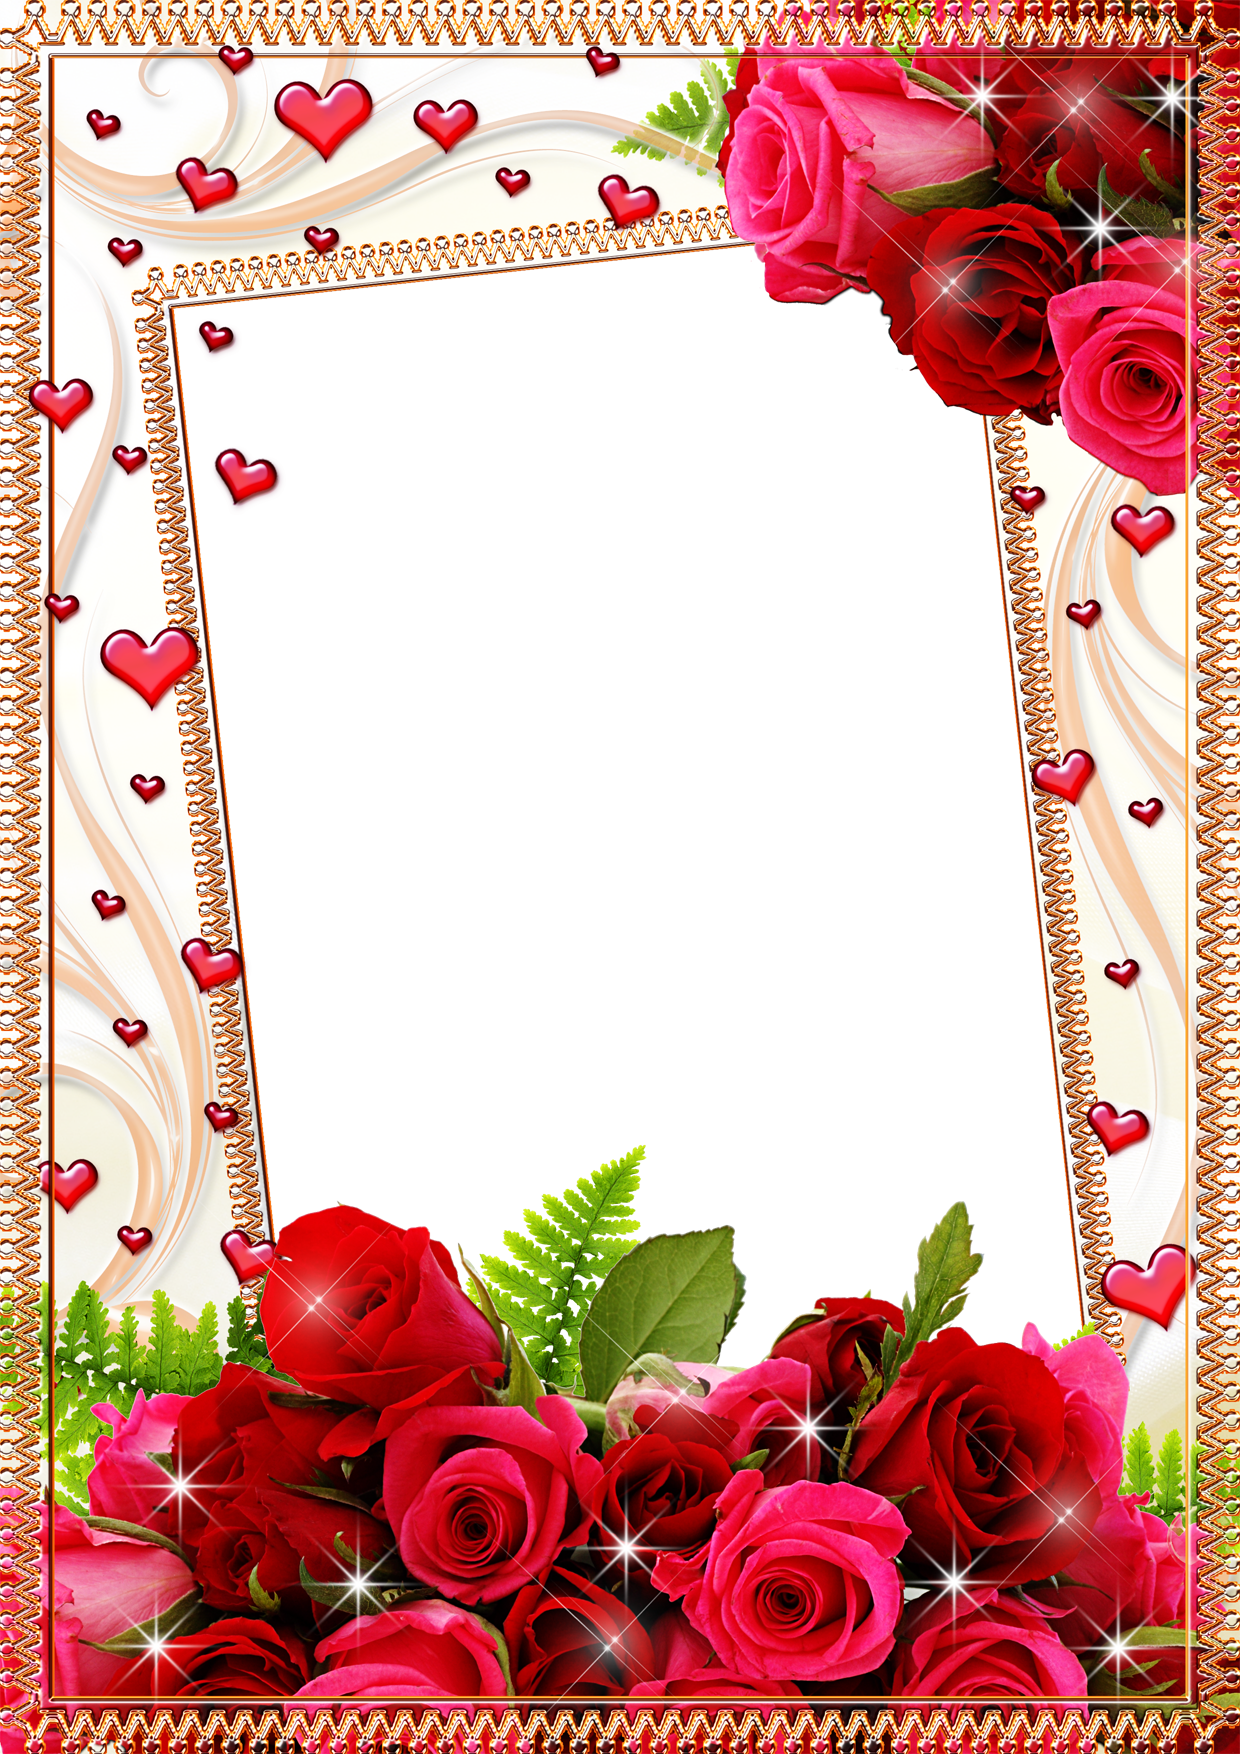 Download Picture Flower Mood Pictures Frame Rose HQ PNG ...